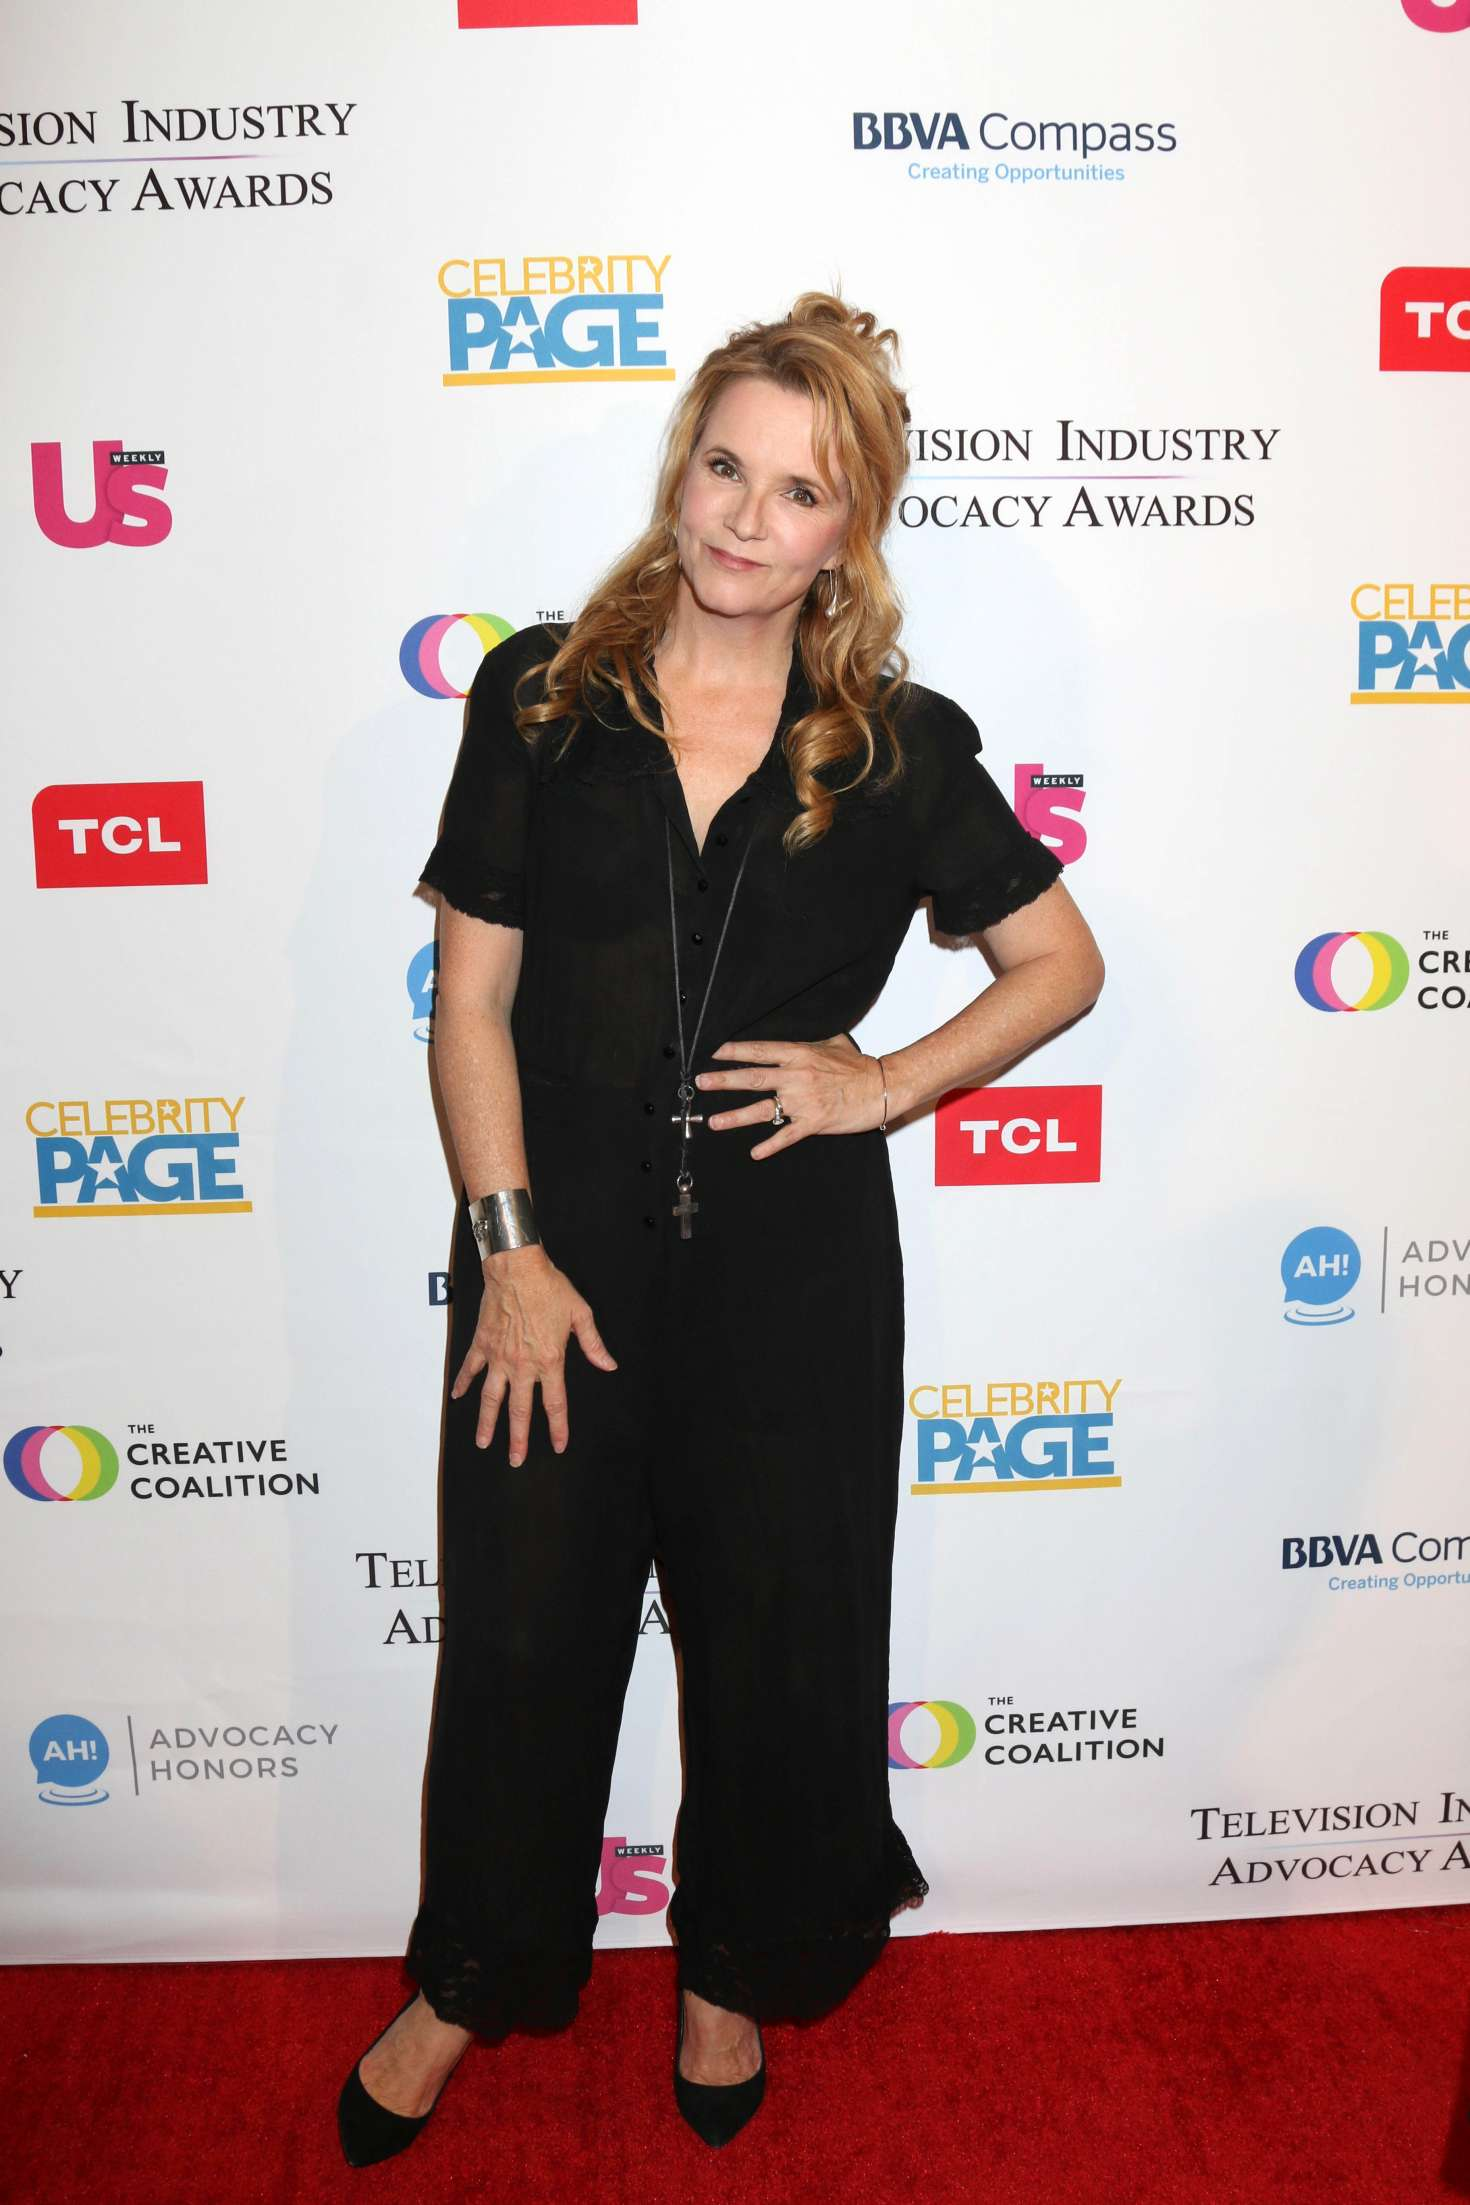 Lea Thompson - 2018 Television Industry Advocacy Awards in LA